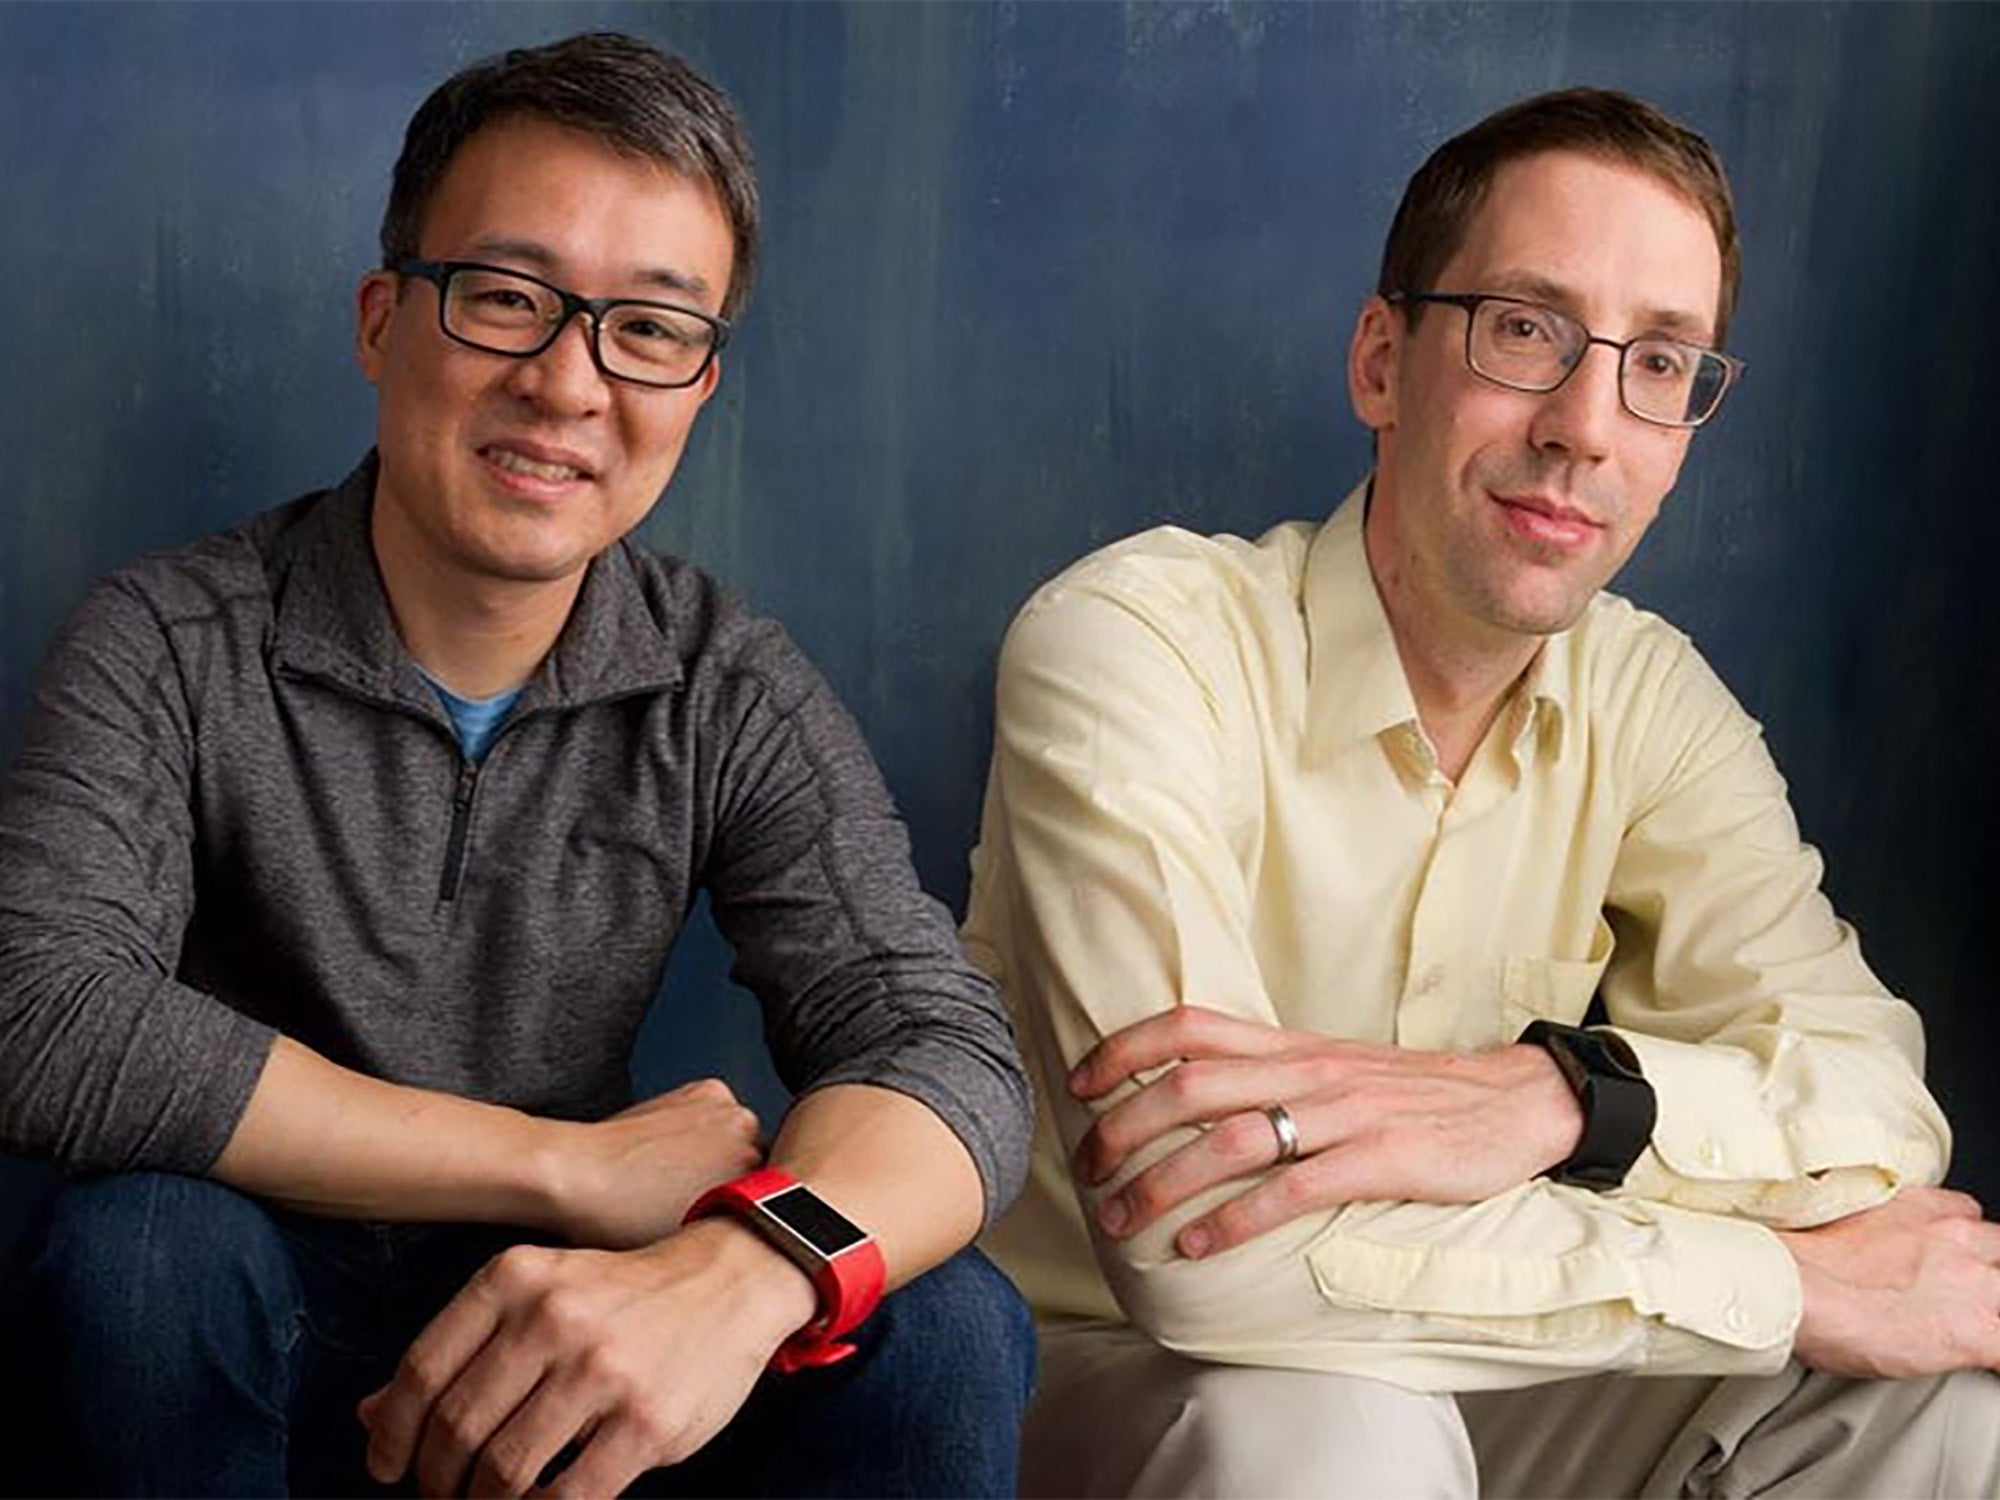 strapcode-watch-bands-2-Fitbit-founders-James-Park-and-Eric-Friedman